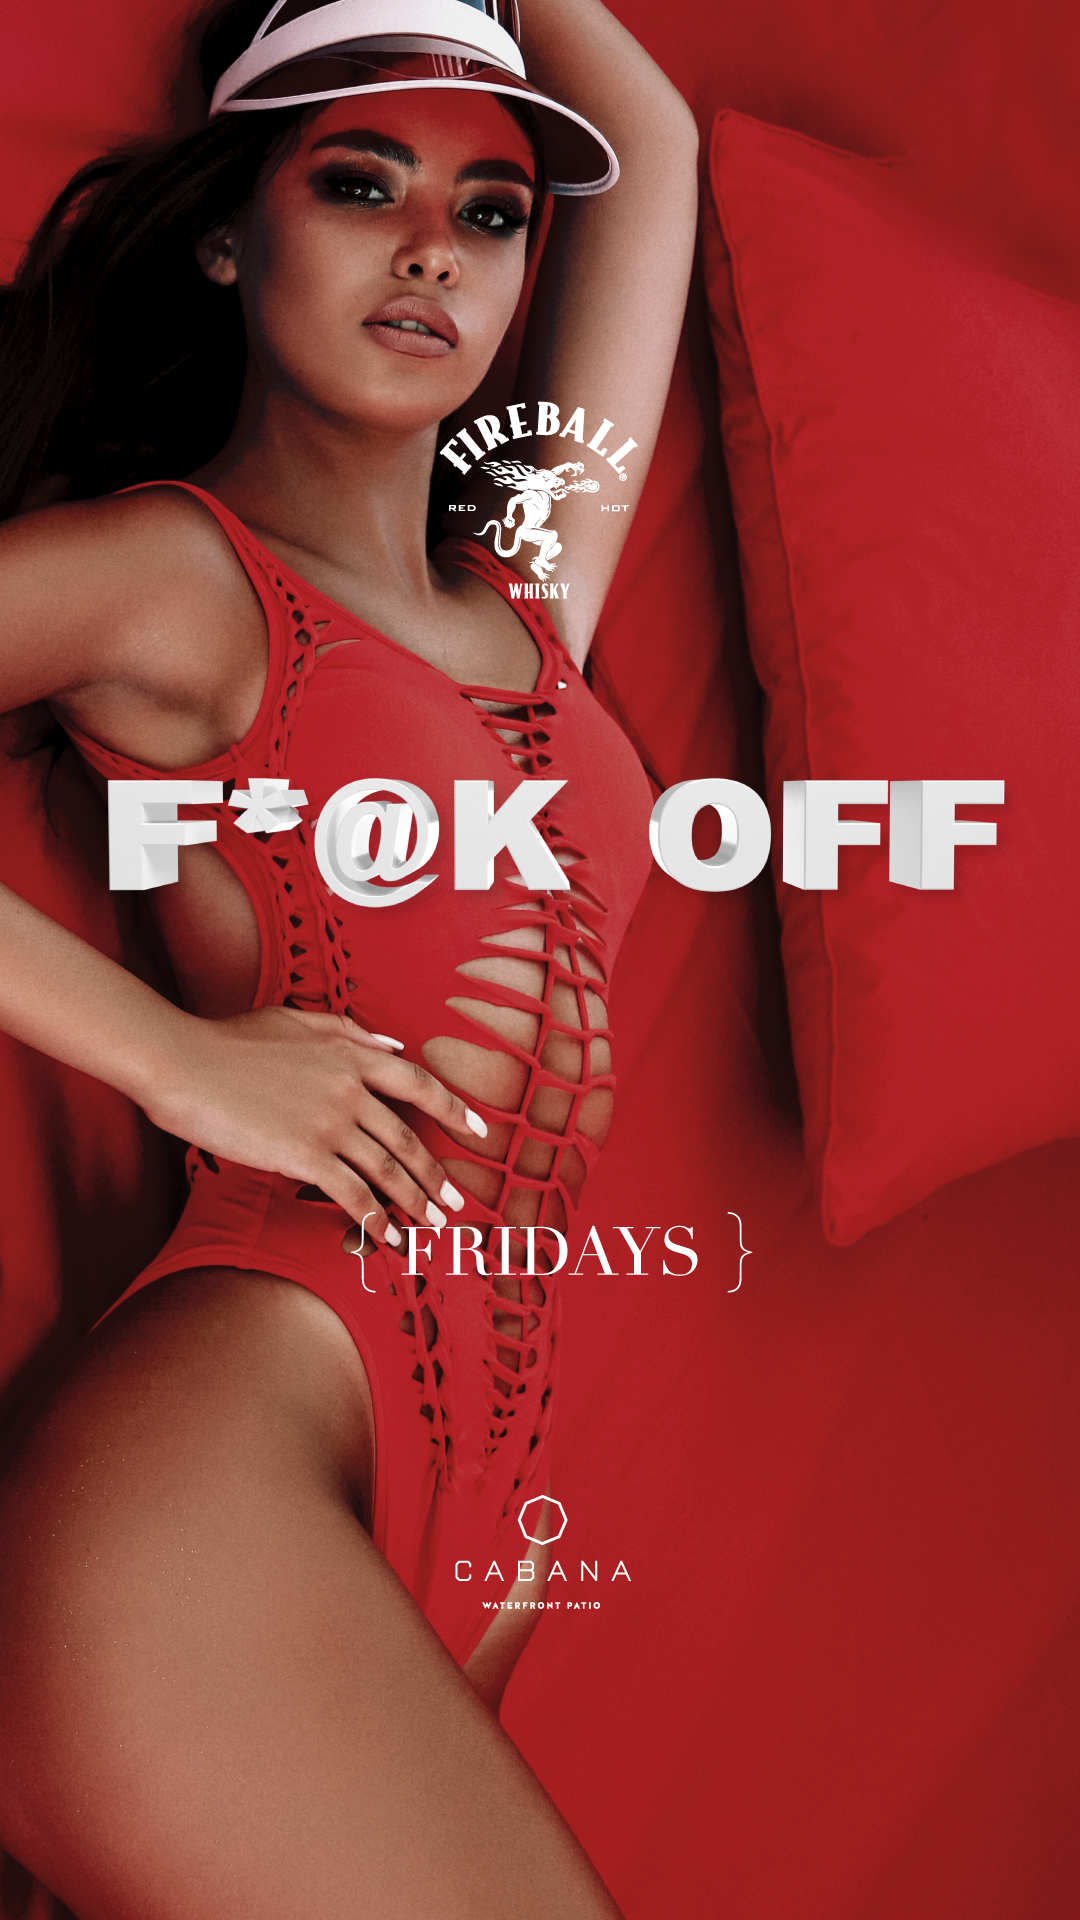 F*** OFF FRIDAYShalf-priced apps from 3pm-6pm with purchase of featured drinks